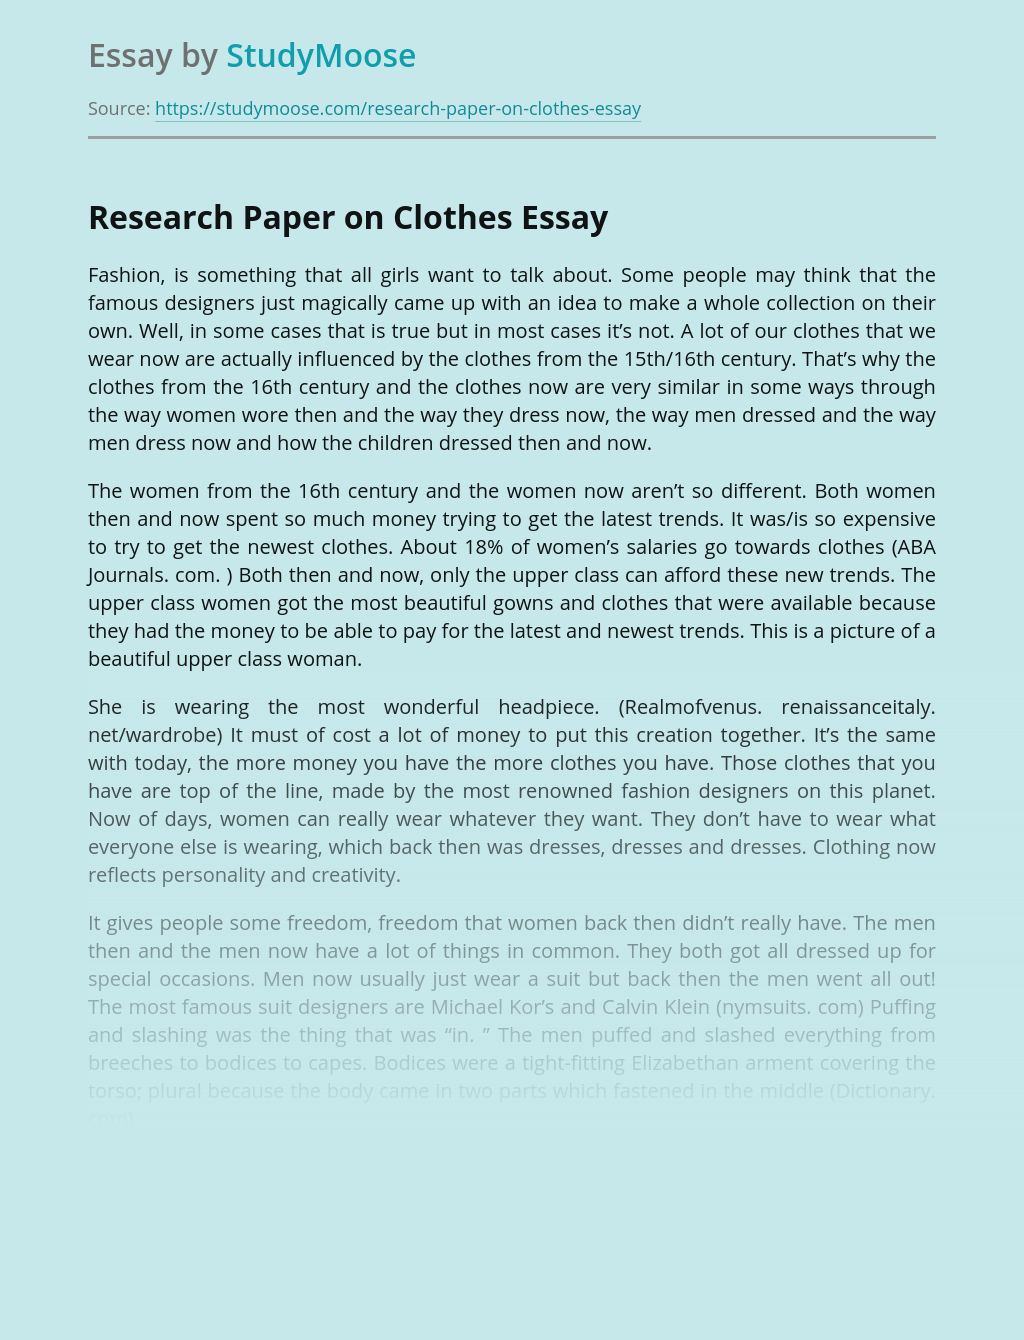 Research Paper on Clothes